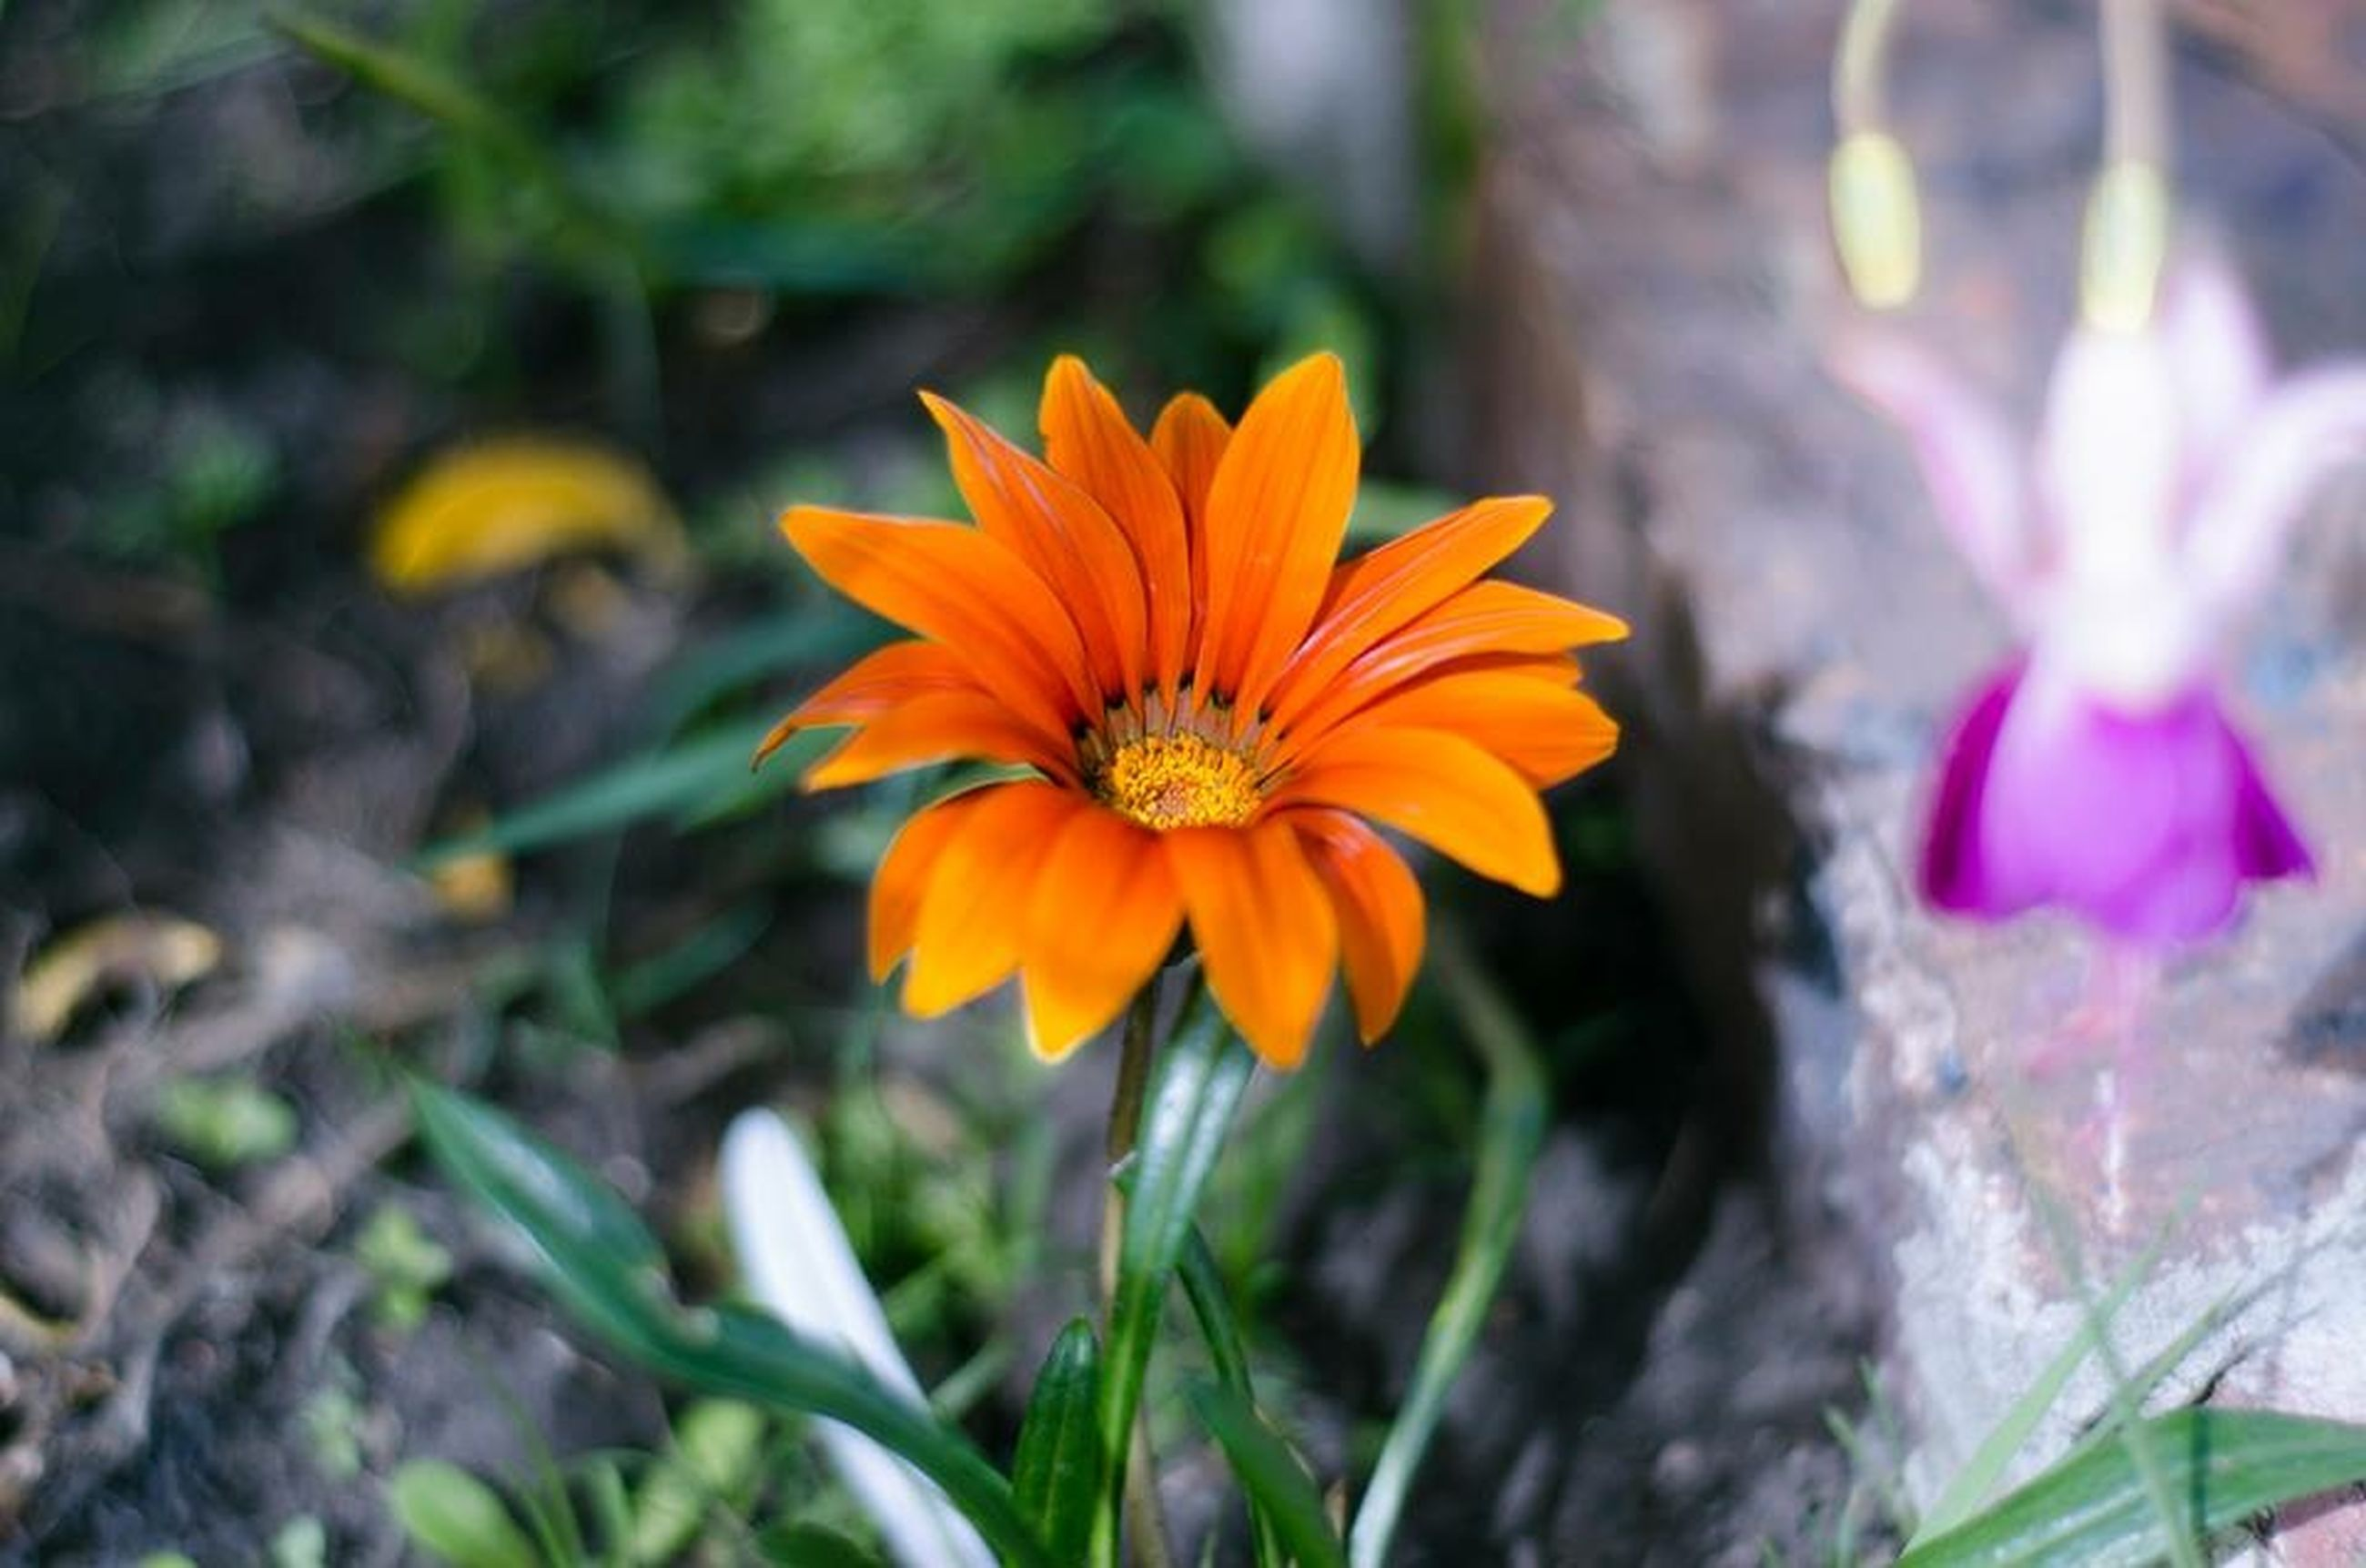 flower, petal, flower head, freshness, fragility, growth, focus on foreground, yellow, close-up, beauty in nature, blooming, plant, nature, orange color, pollen, in bloom, single flower, stem, park - man made space, day